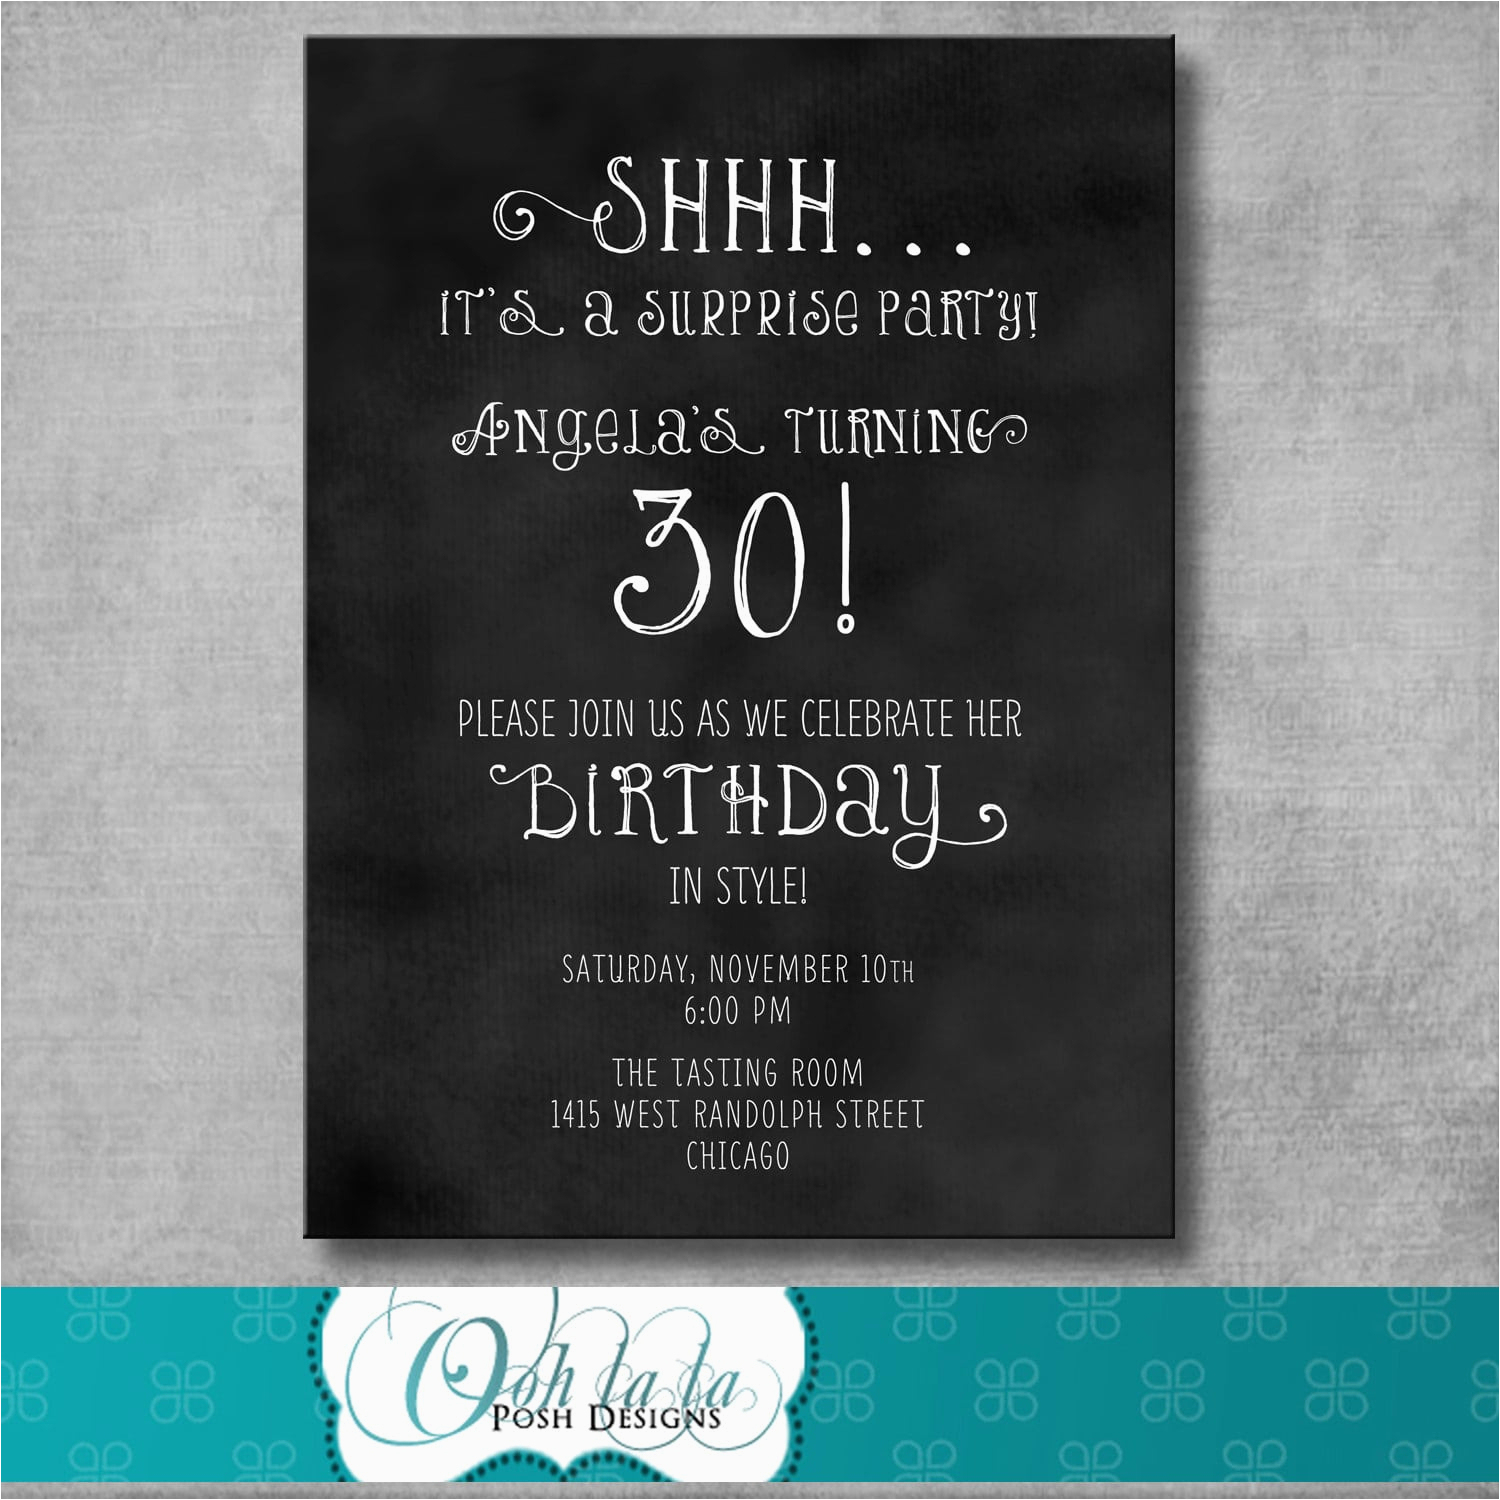 Free Surprise Birthday Party Invitations Free Printable Surprise - Free Printable Surprise Party Invitations